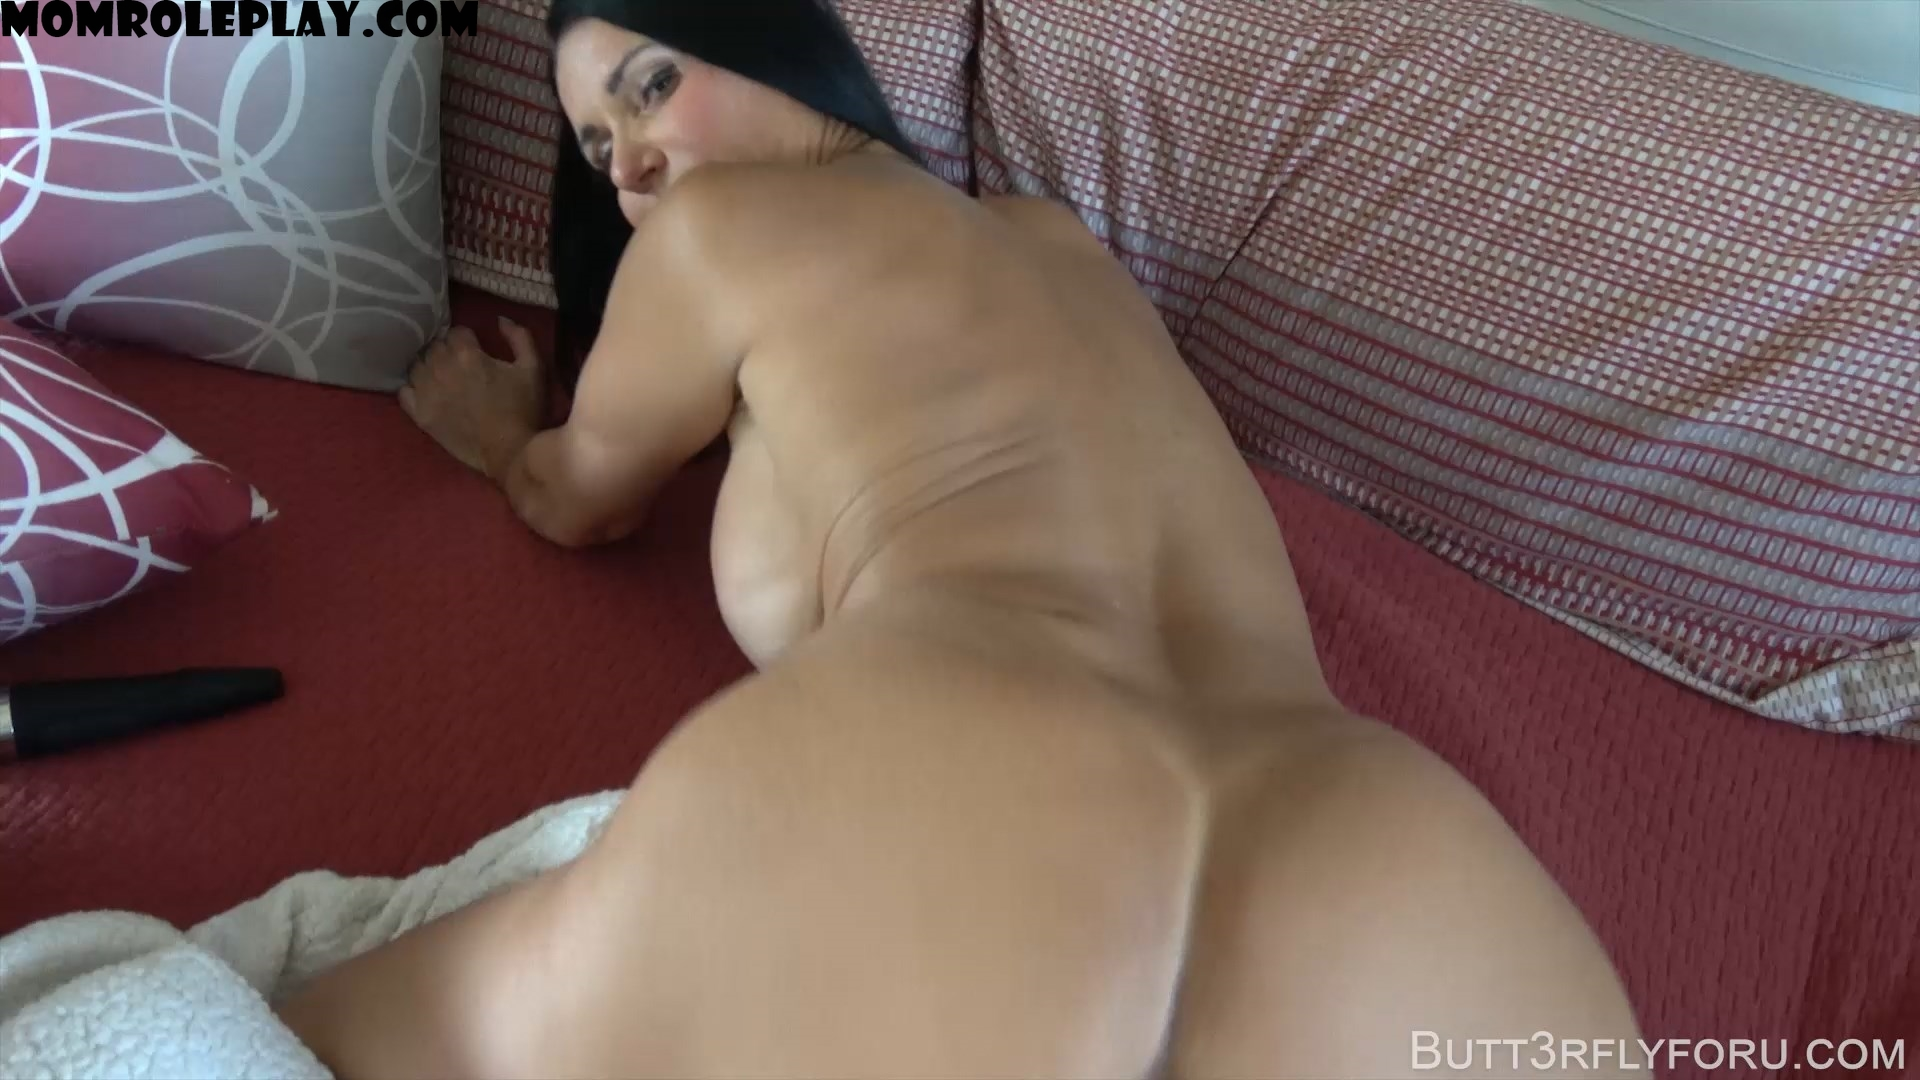 Butt3rflyforU Fantasies - Daddy Is Out On Business And Mommy Is Horny